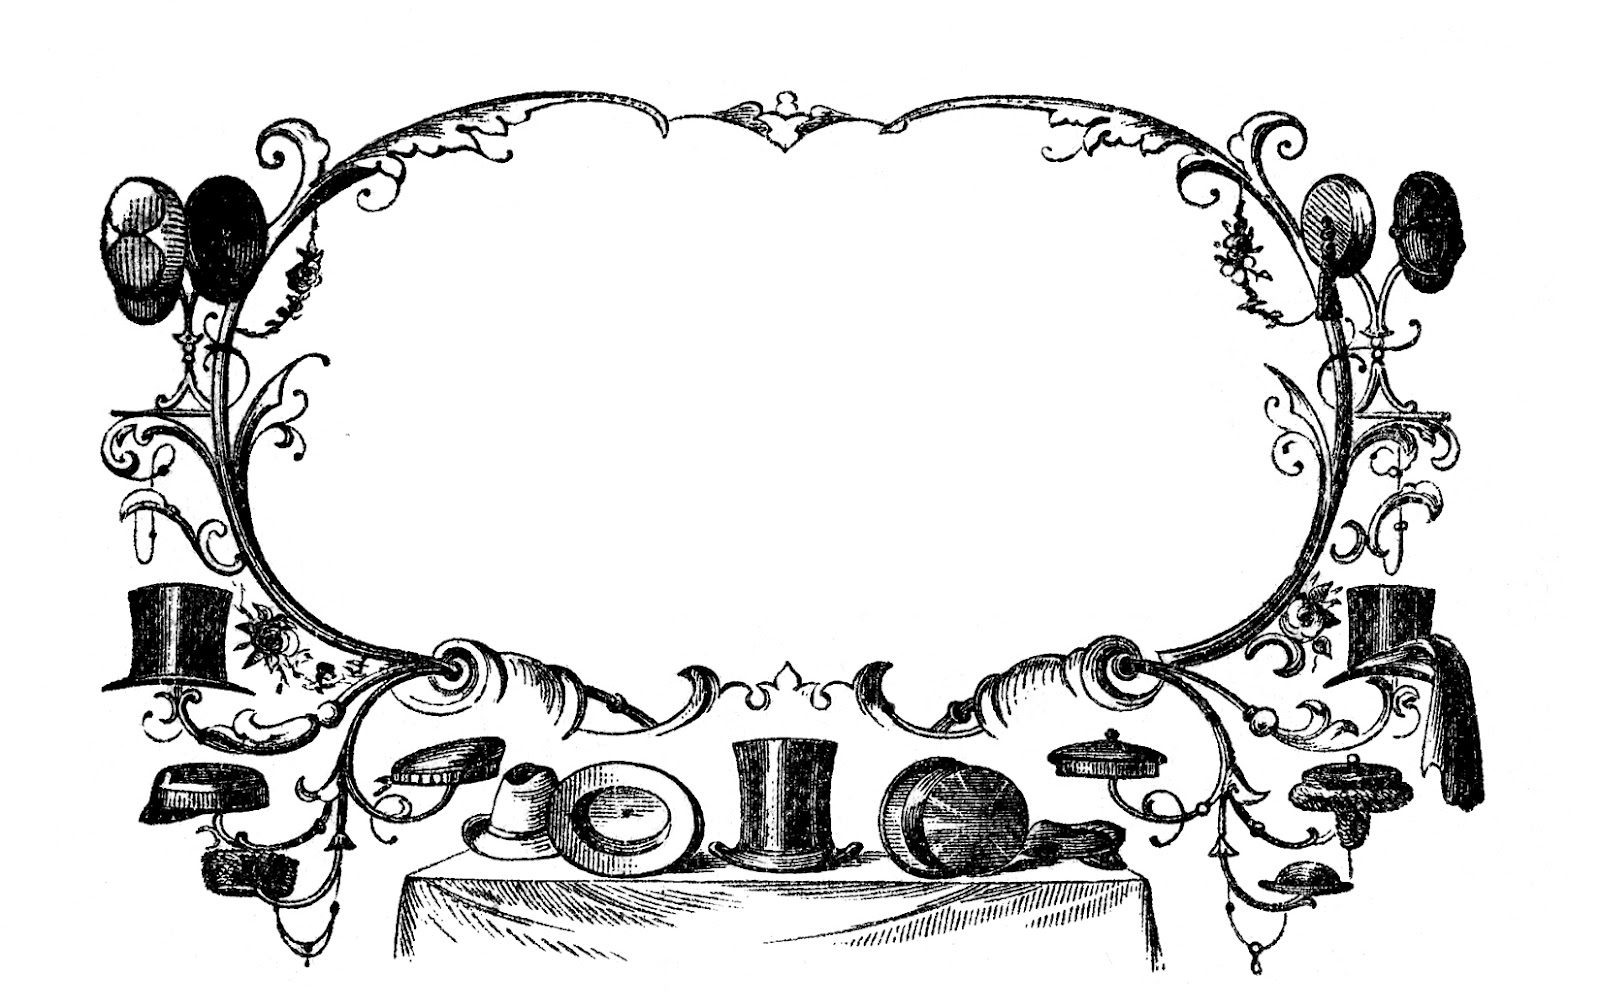 Advertising clipart black and white clipart black and white download Vintage Advertising Clip Art - Victorian Hats - The Graphics Fairy clipart black and white download